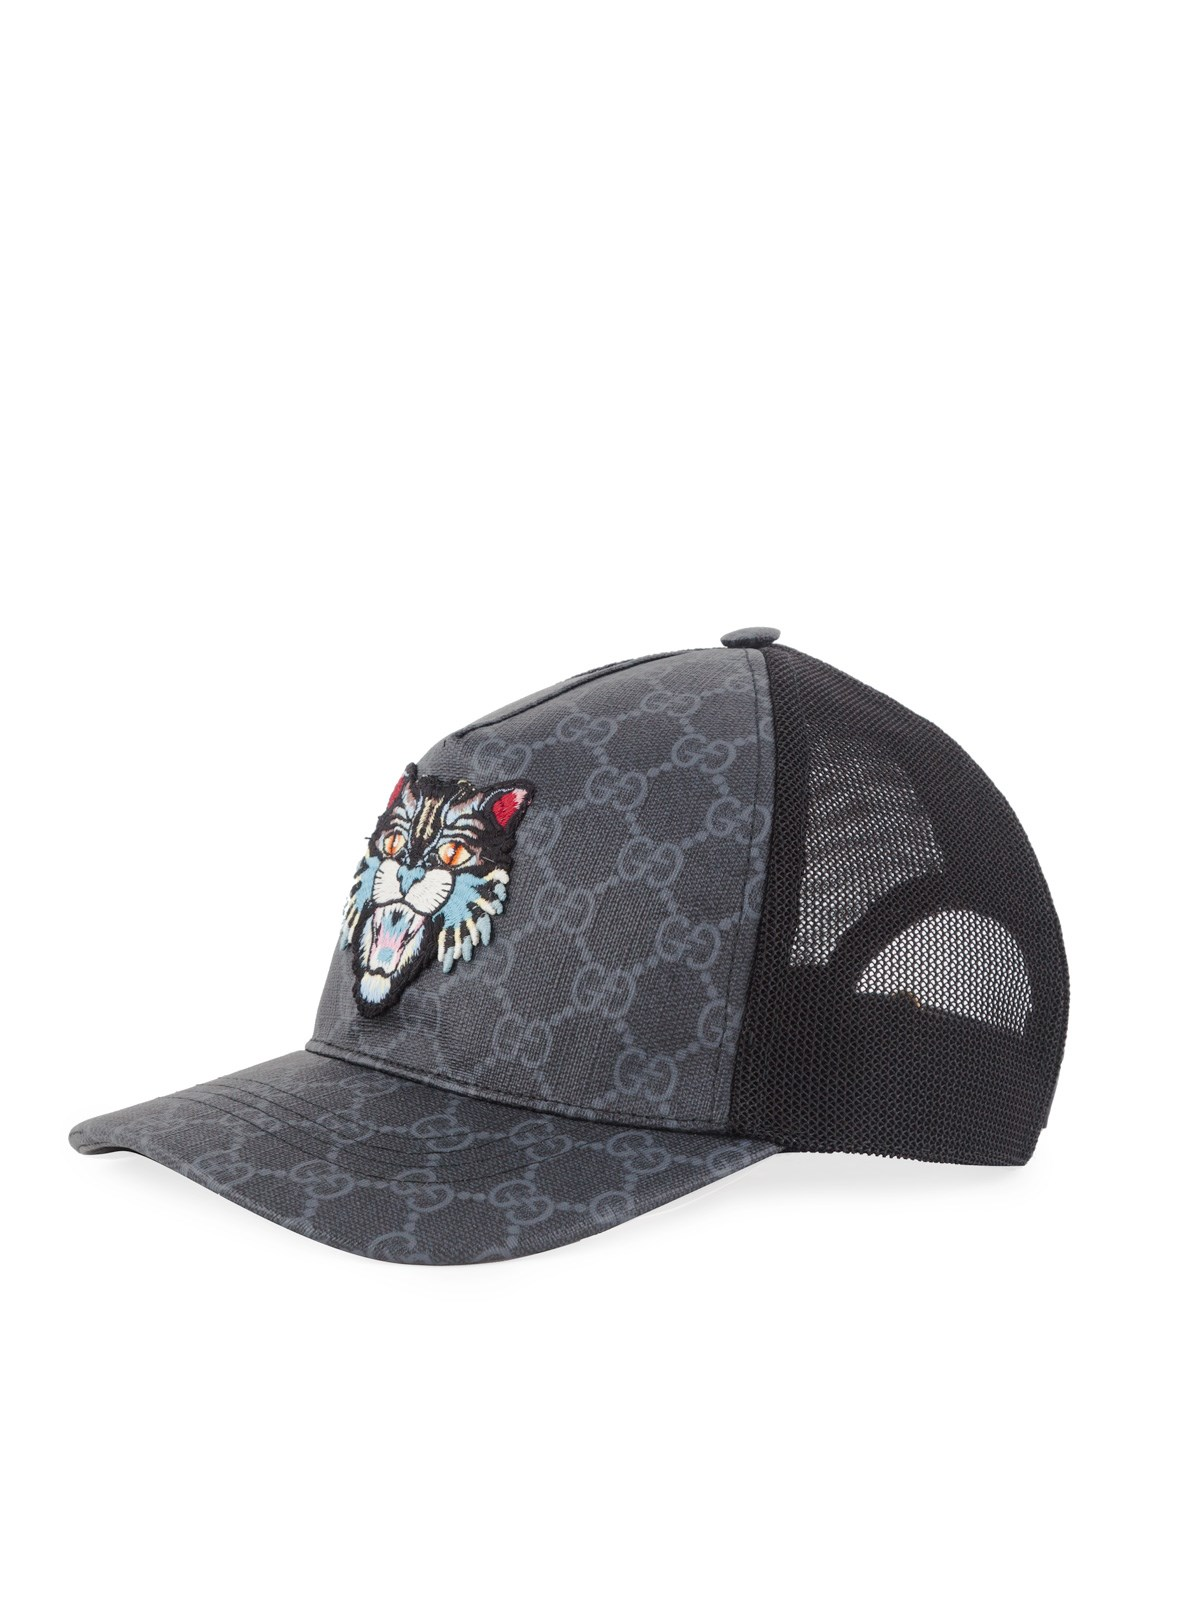 gucci GG SUPREME ANGRY CAT BASEBALL CAP available on montiboutique ... 08a60919d5b